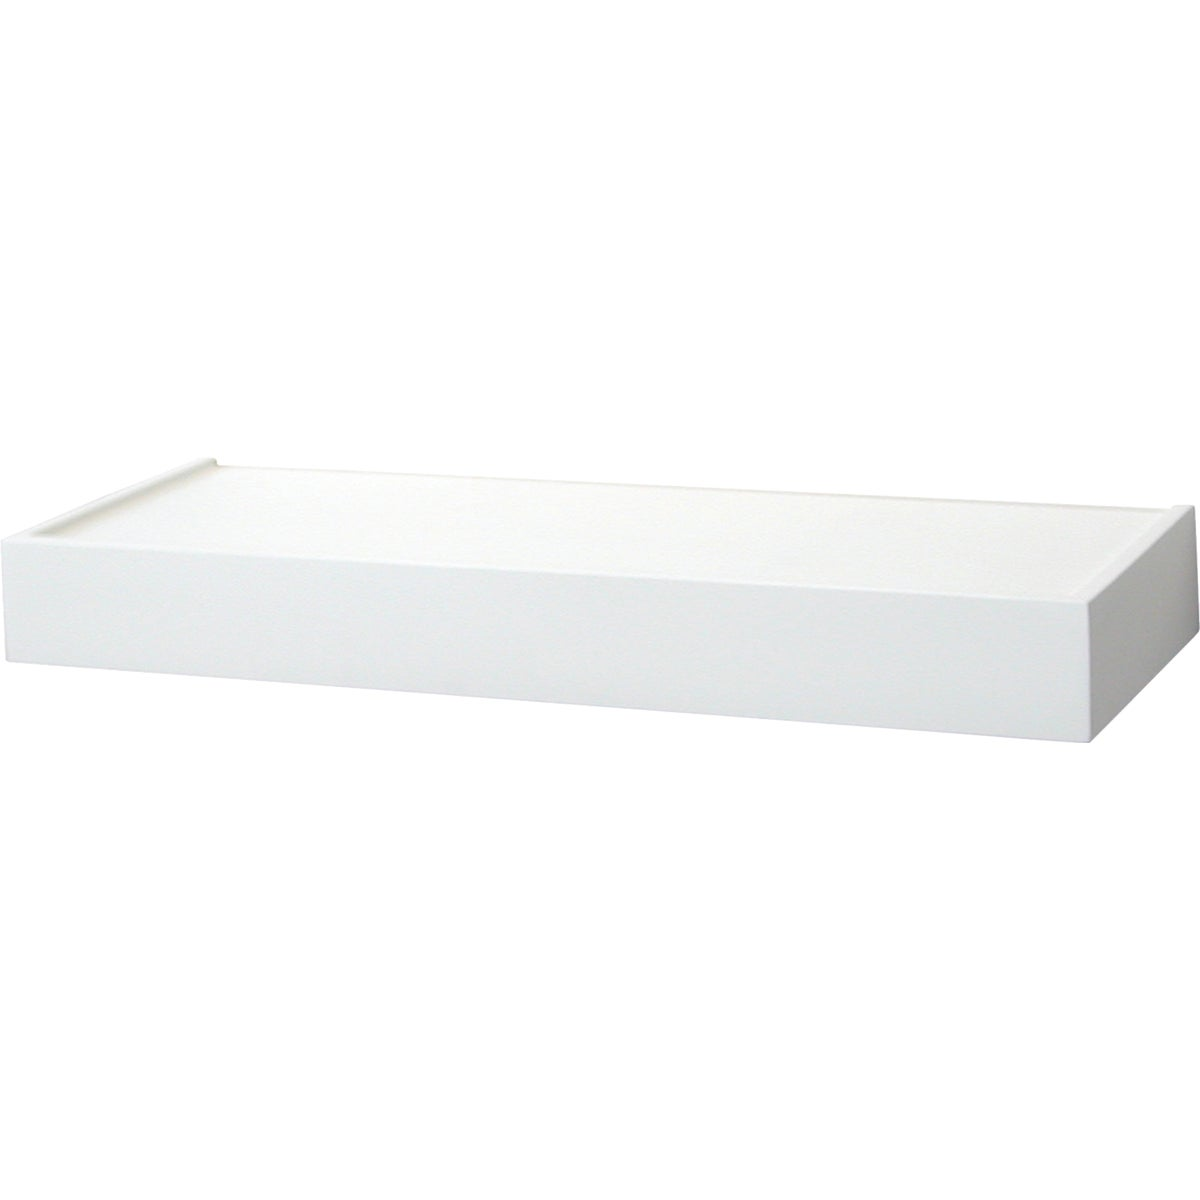 "24"" WHITE FLOATING SHELF - 0140-24WT by Knape & Vogt Mfg Co"